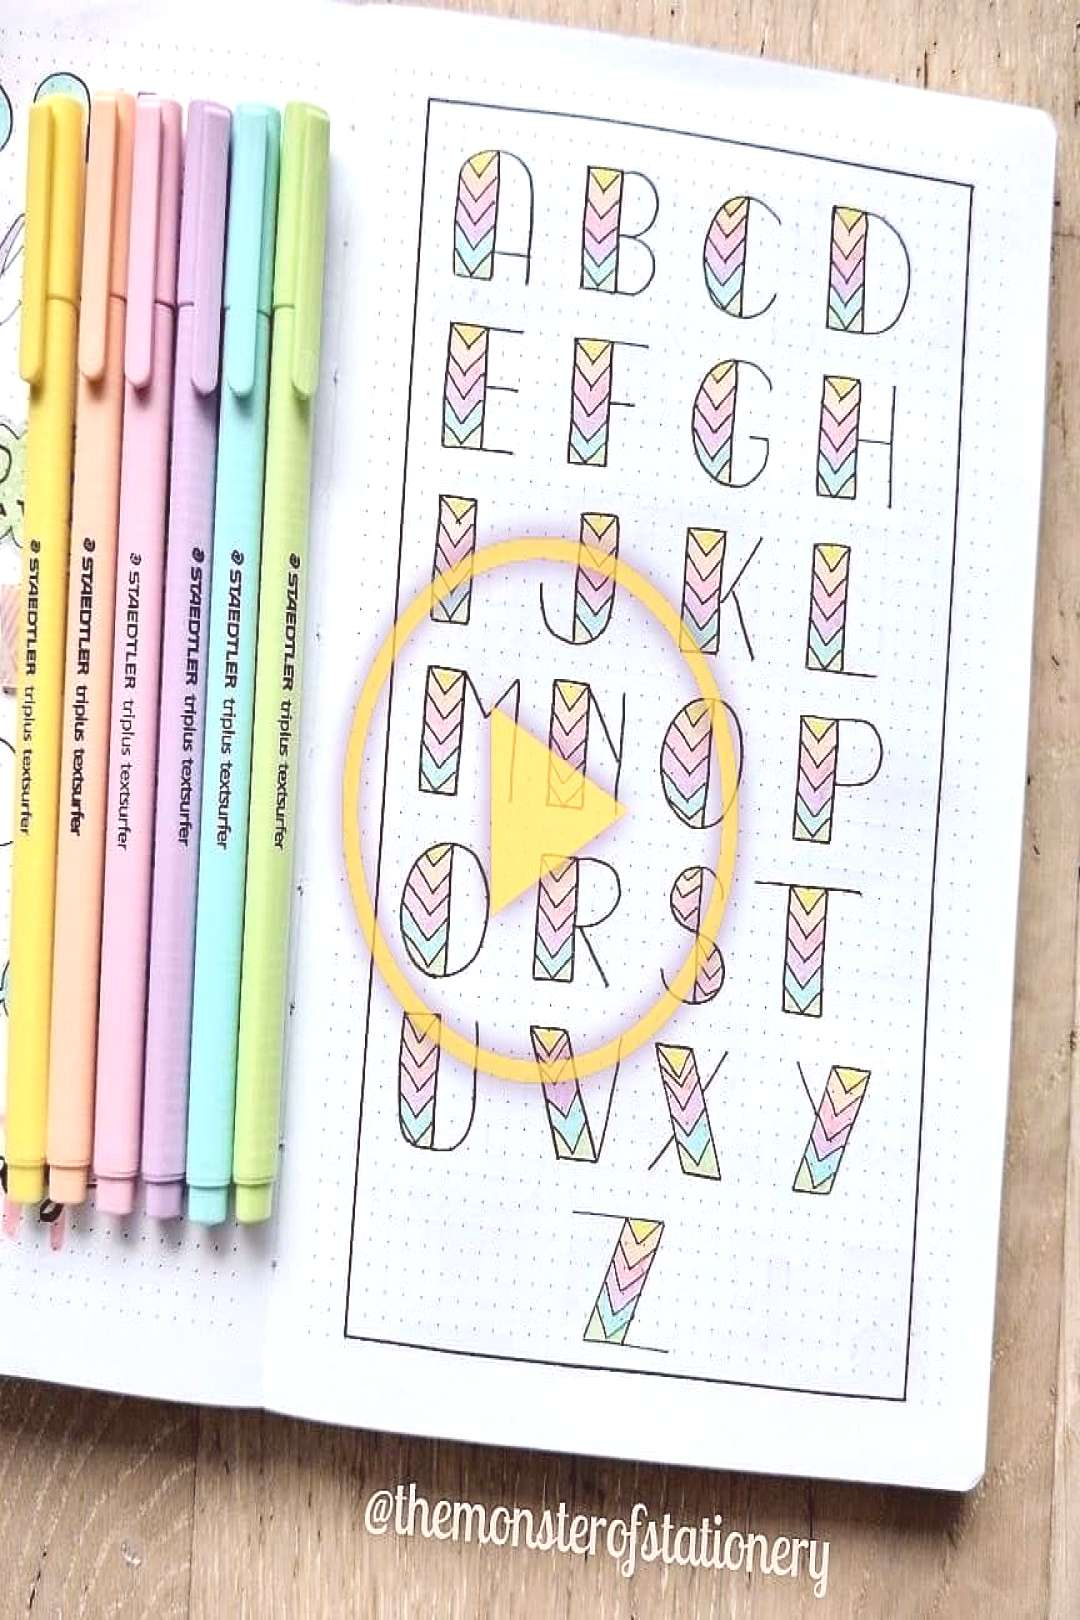 Visit stationery heaven at our shop? Pic credit @themonsterofstationery